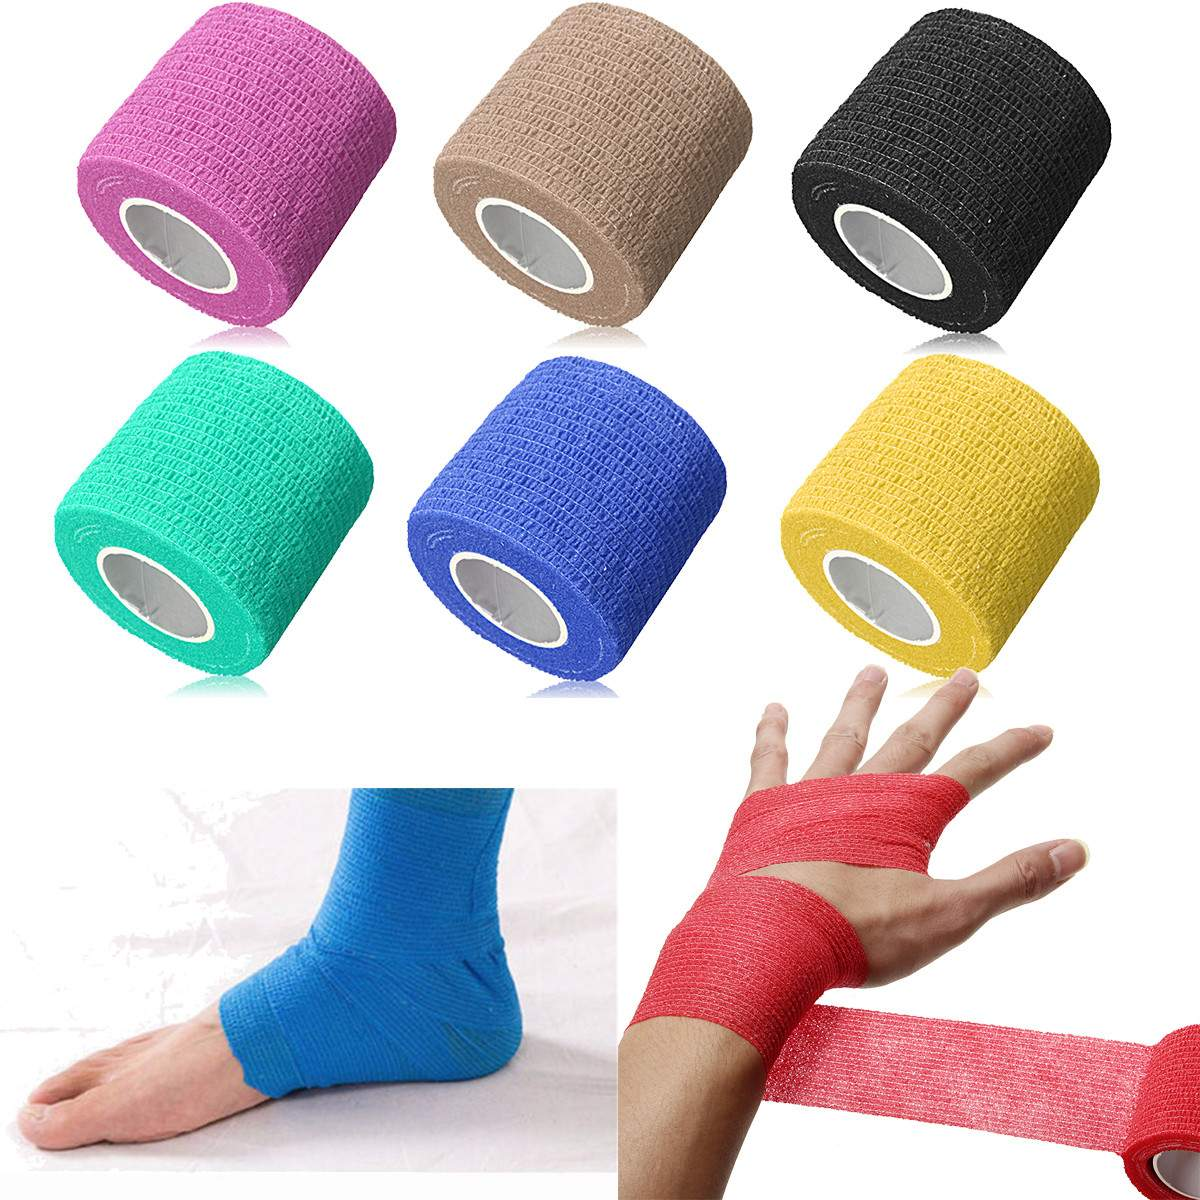 New Security Protection Waterproof Self-adhesive Cshesive Bandages Elastic Wrap First Aid Sports Body Gauze Vet Medical Tape Durable In Use Security & Protection